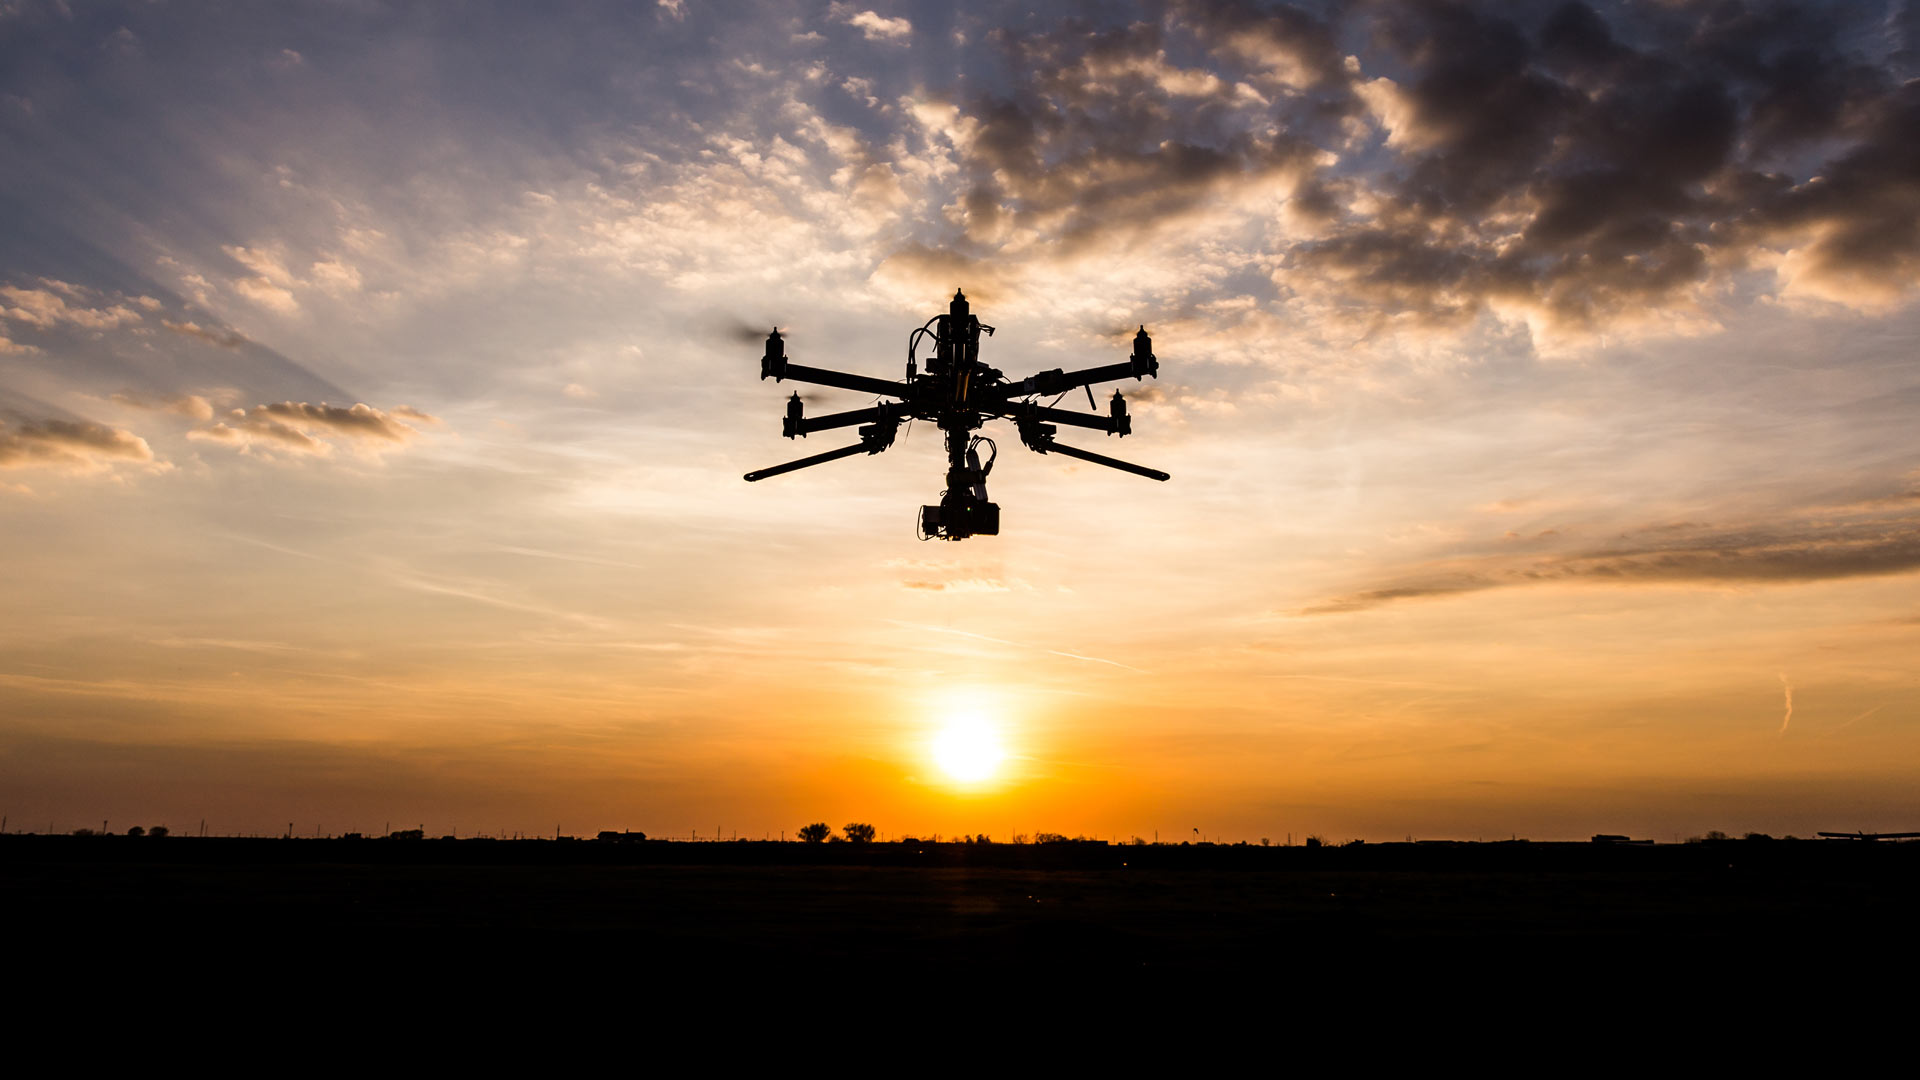 Drone flying in the evening